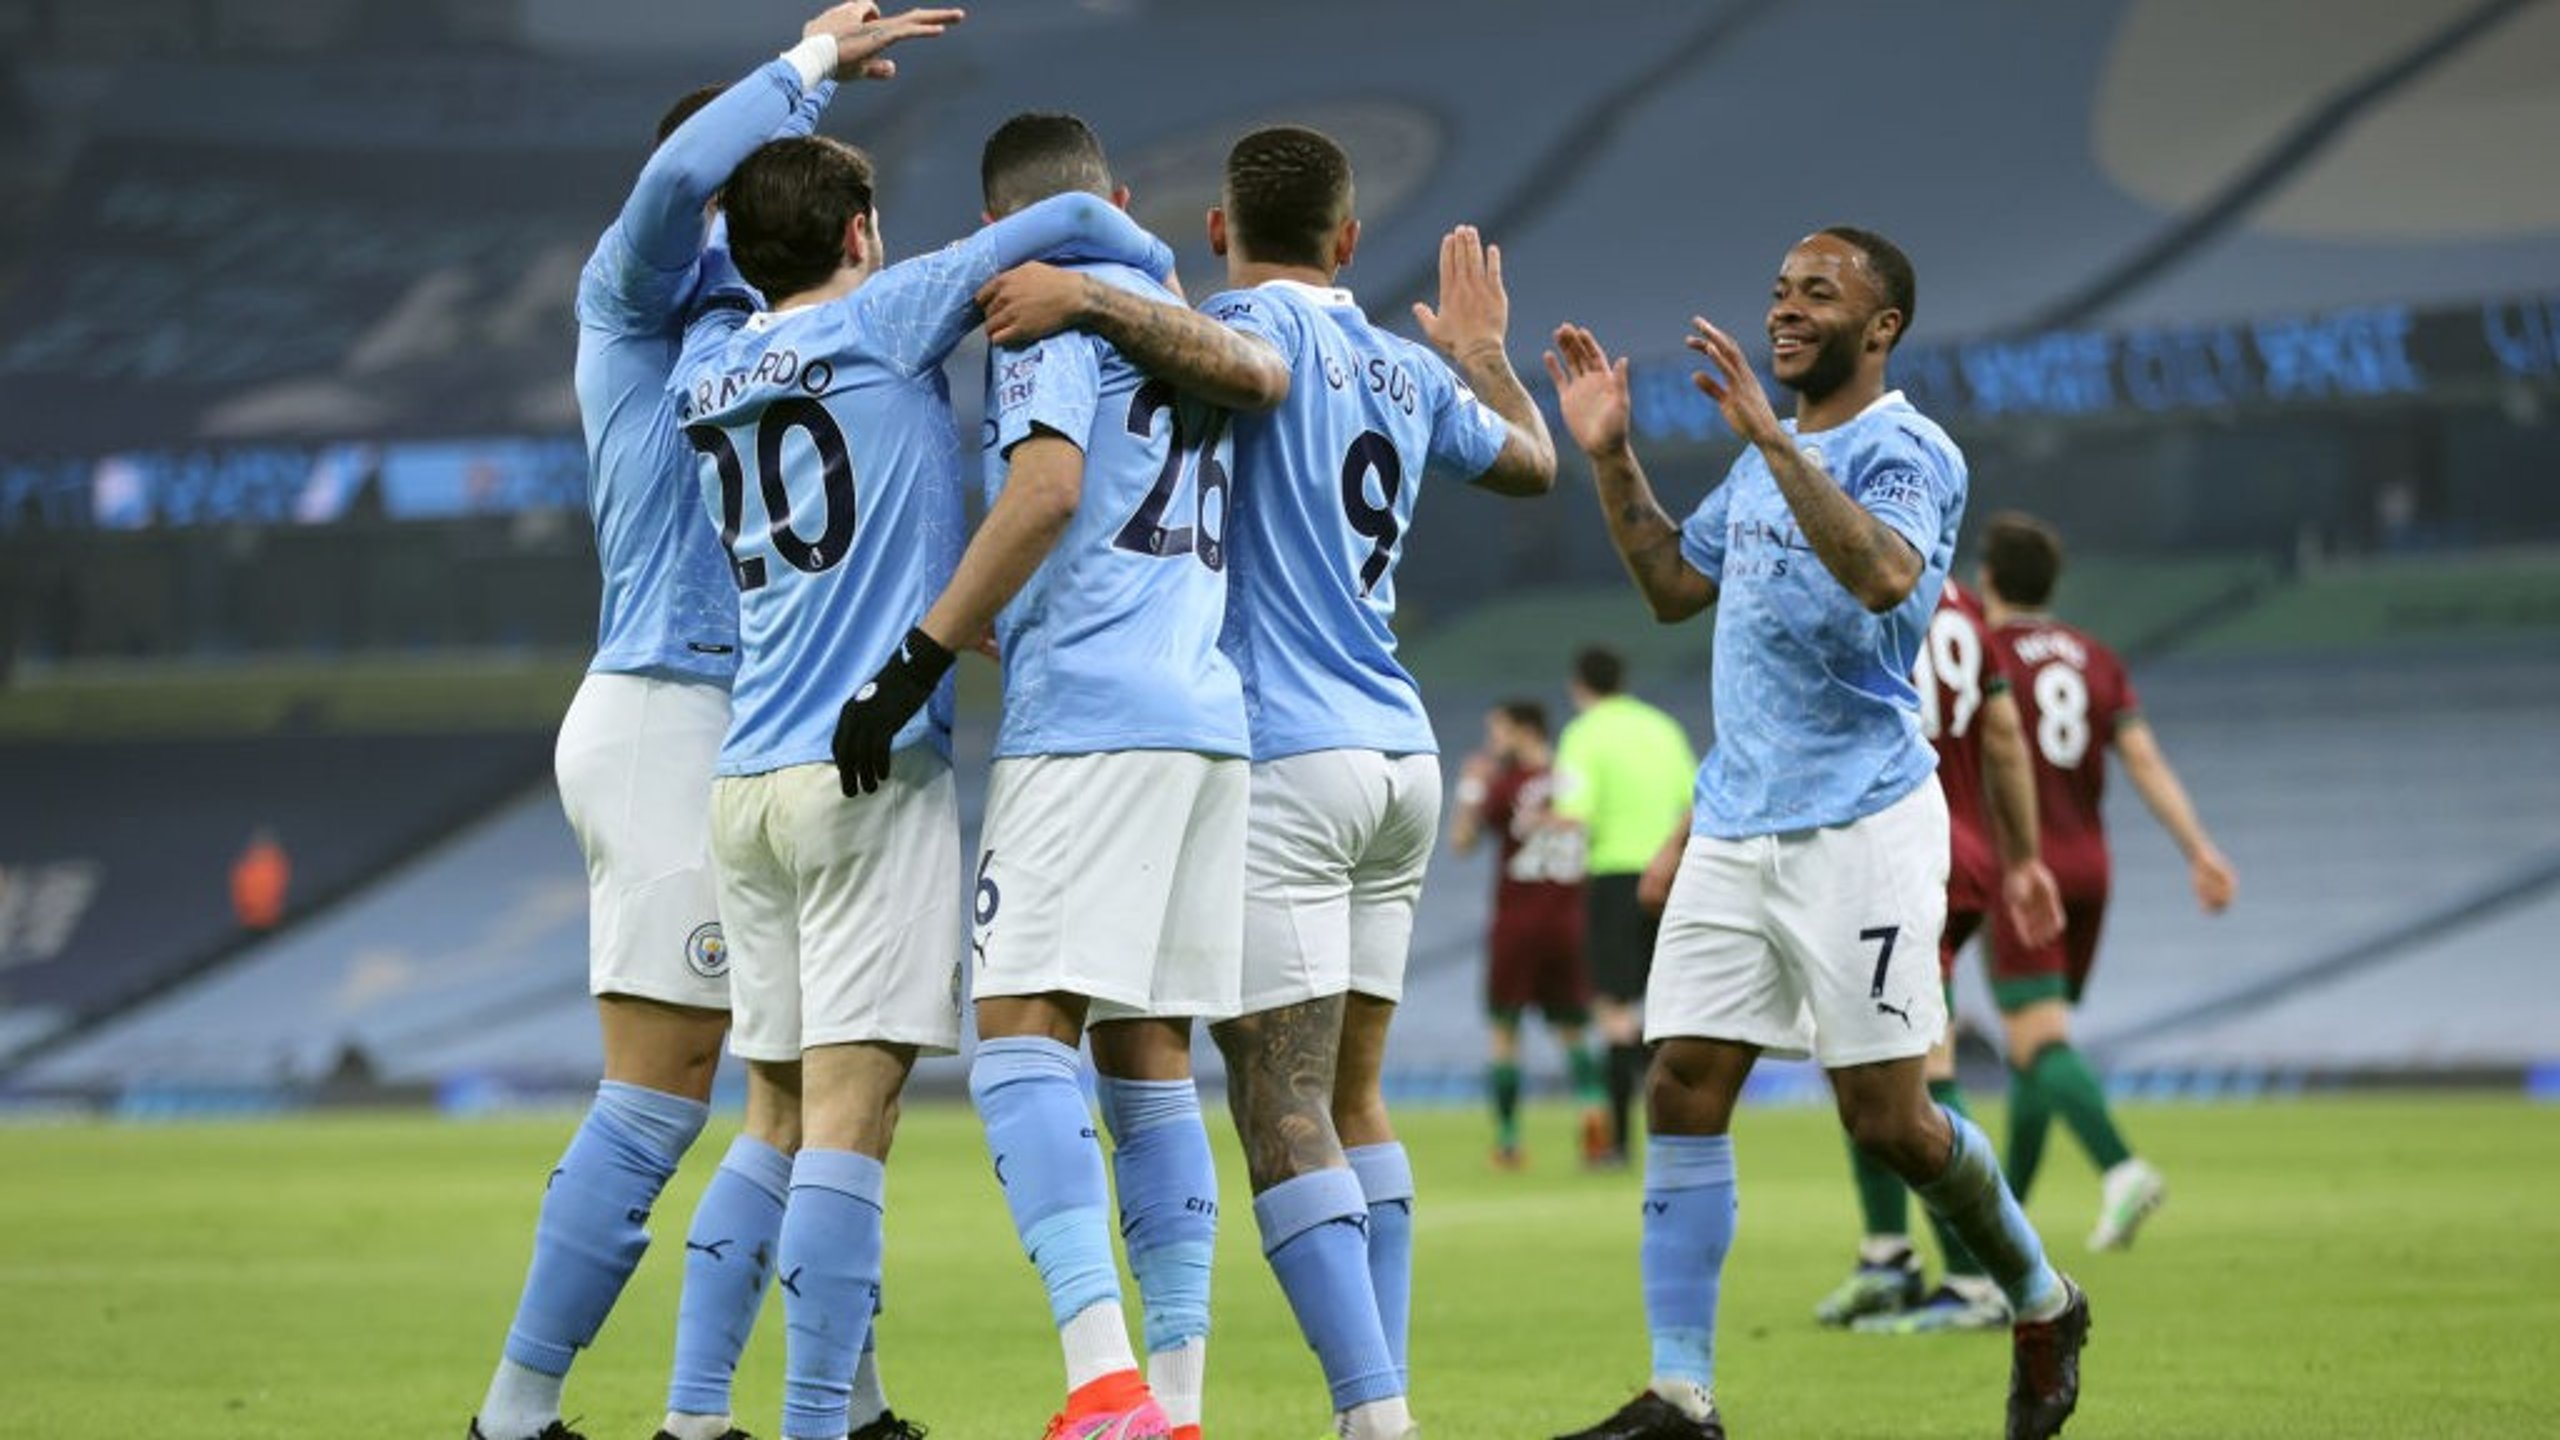 SQUAD GOALS: The lads celebrate the breakthrough